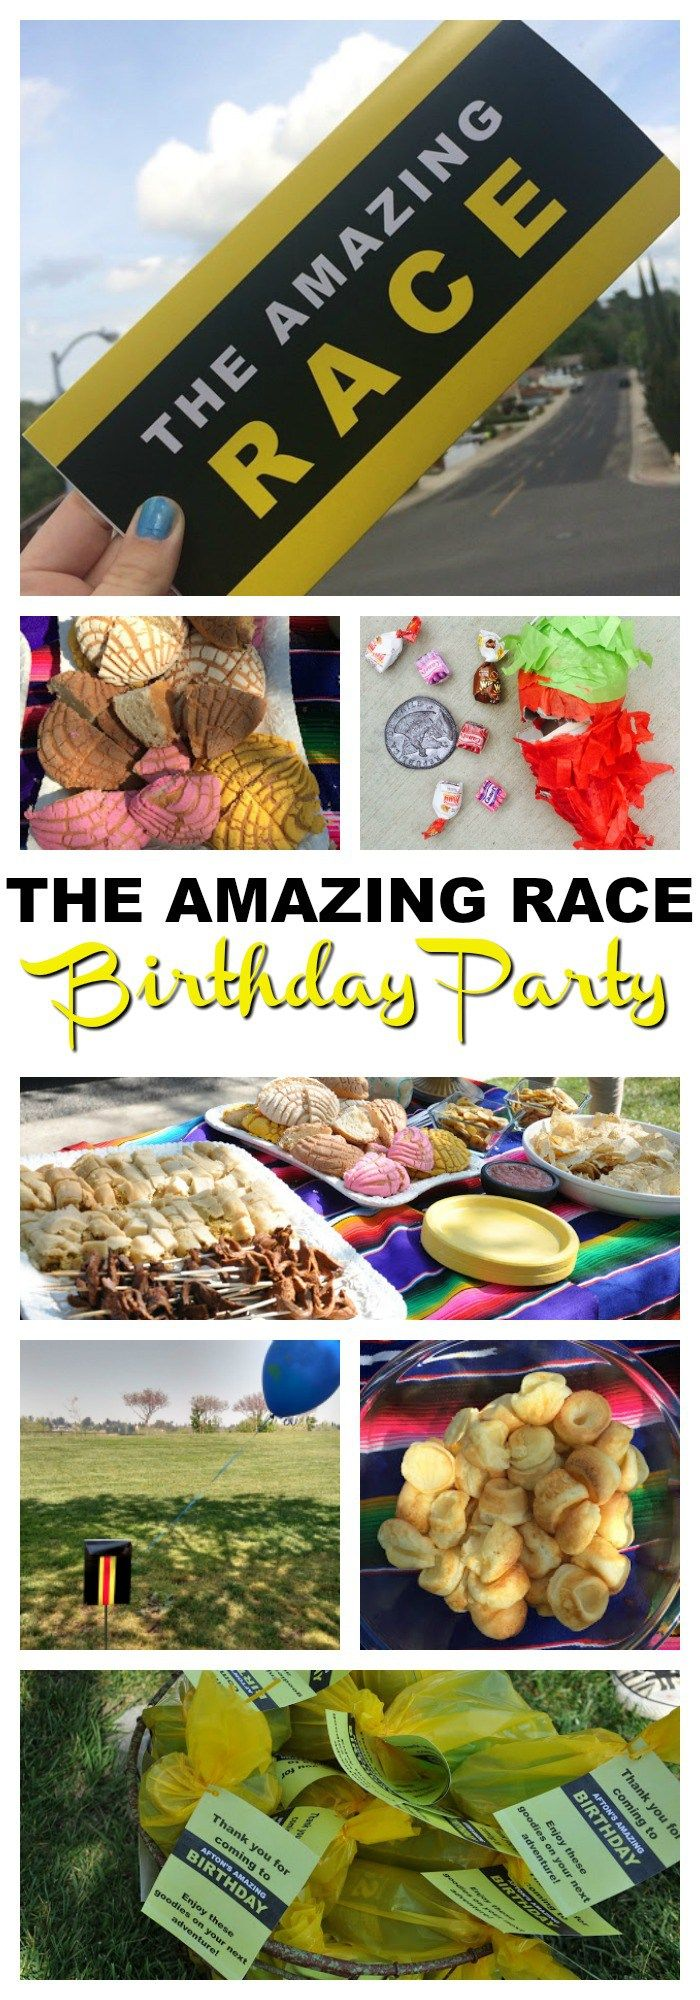 Amazing race ideas - The Amazing Race Birthday Party